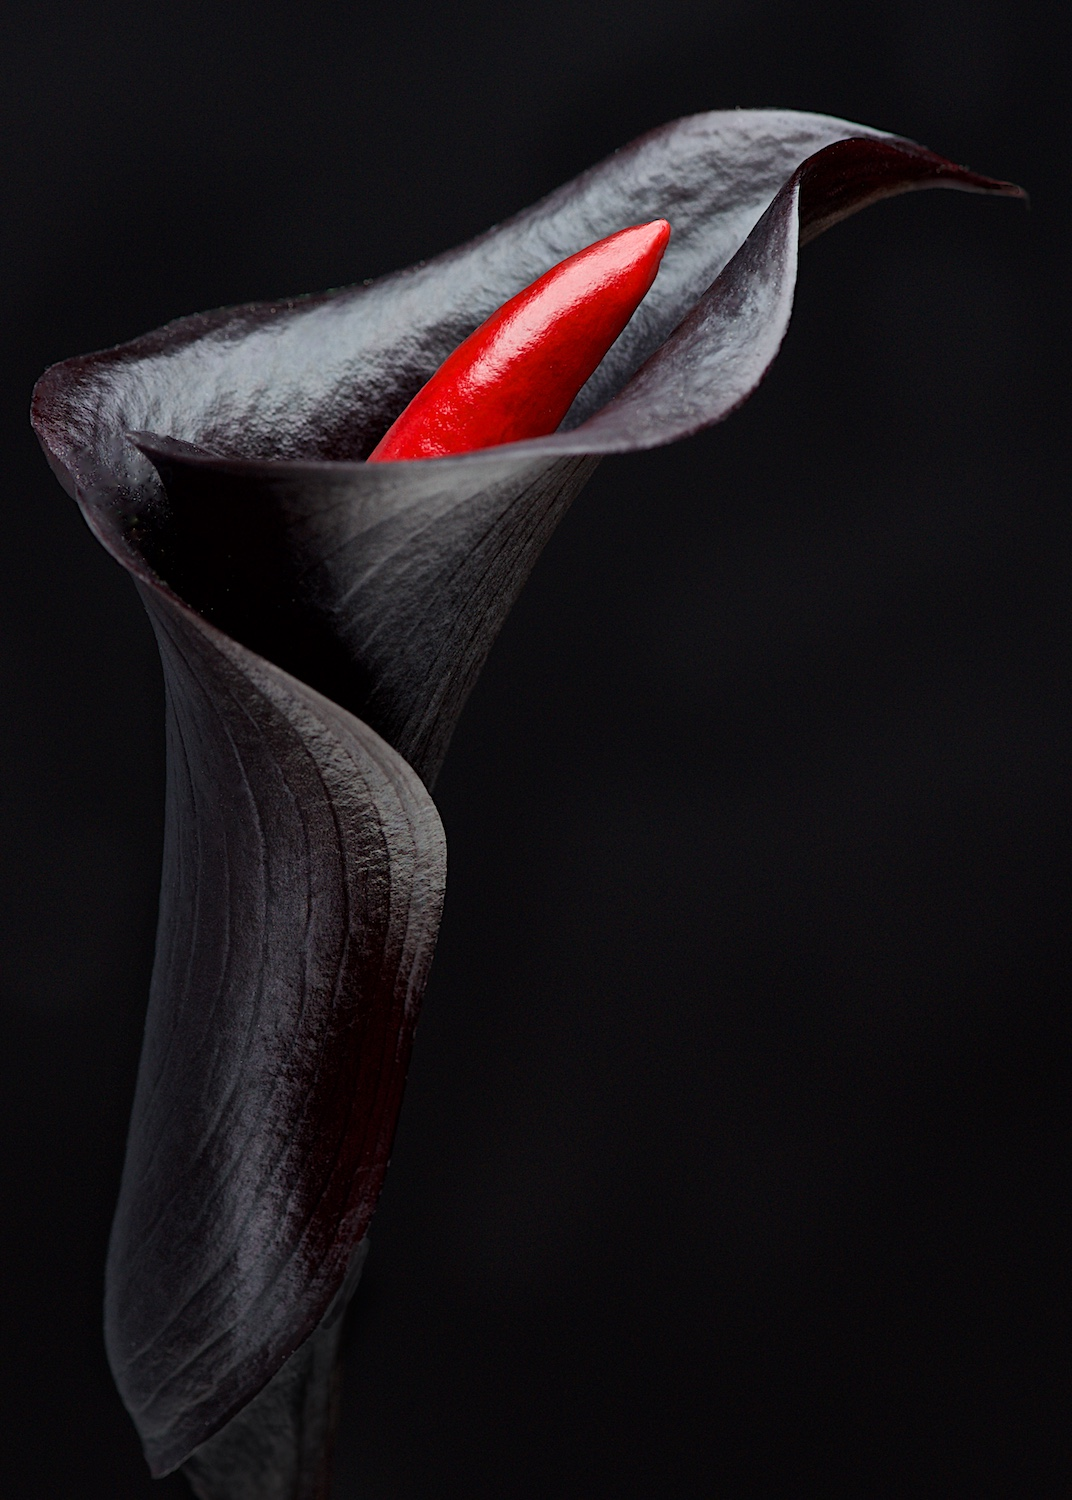 Black Calla Lily with red chili pepper concept on dark background by Bret Doss Commercial Food & Product Photography  Seattle